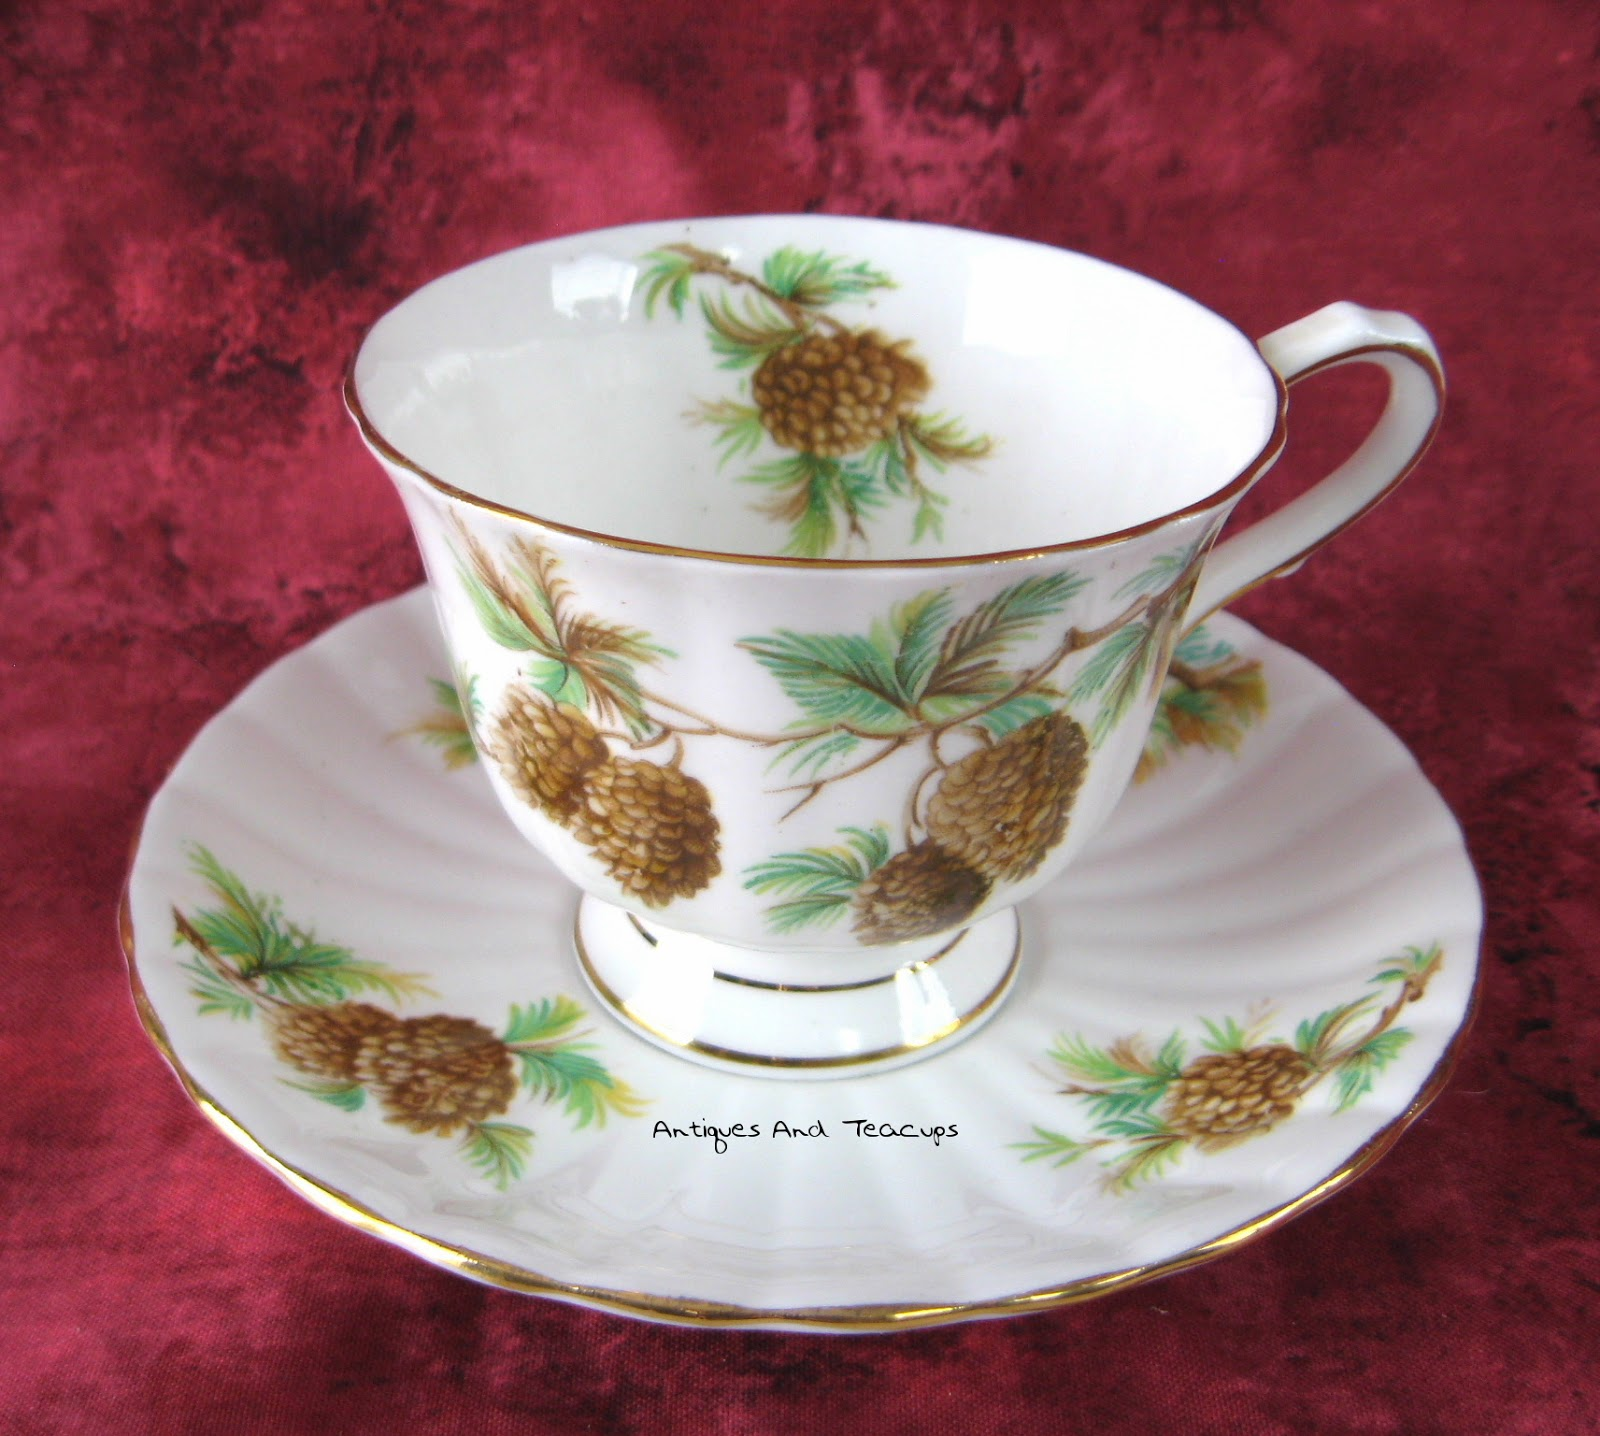 Antiques And Teacups: Tuesday Cuppa Tea, Pinecones Everywhere ...